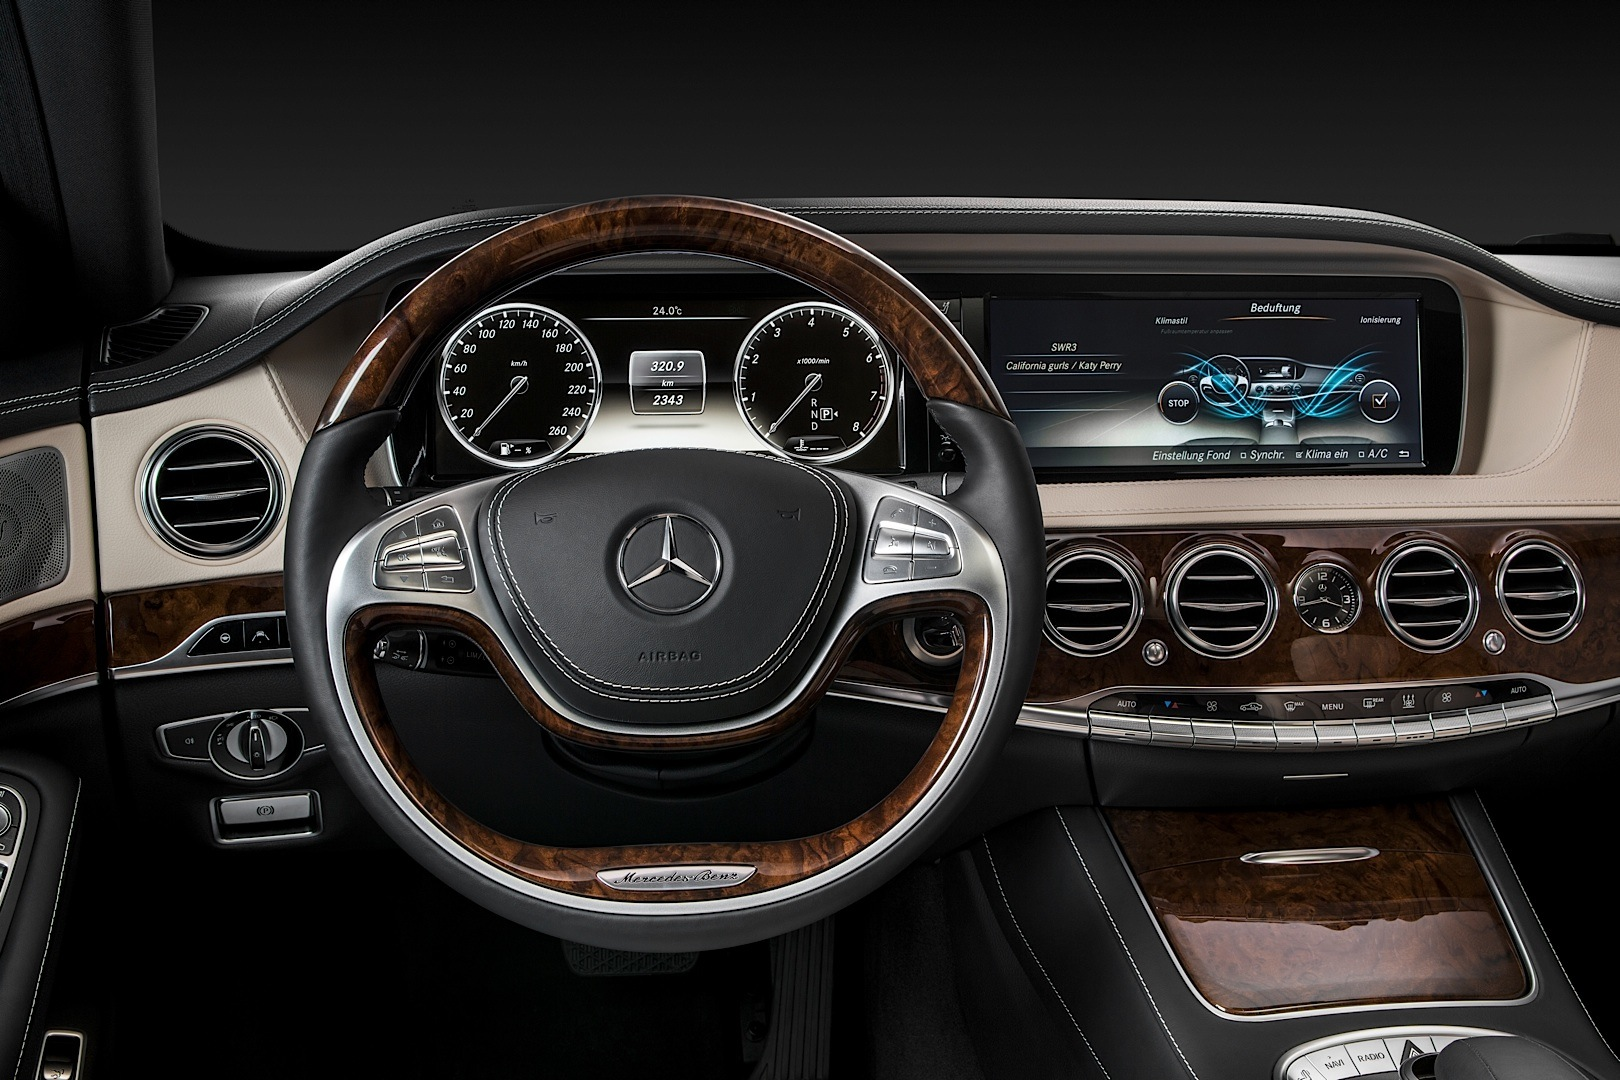 new-s-class-w222-wins-connected-car-of-the-year-award_4.jpg